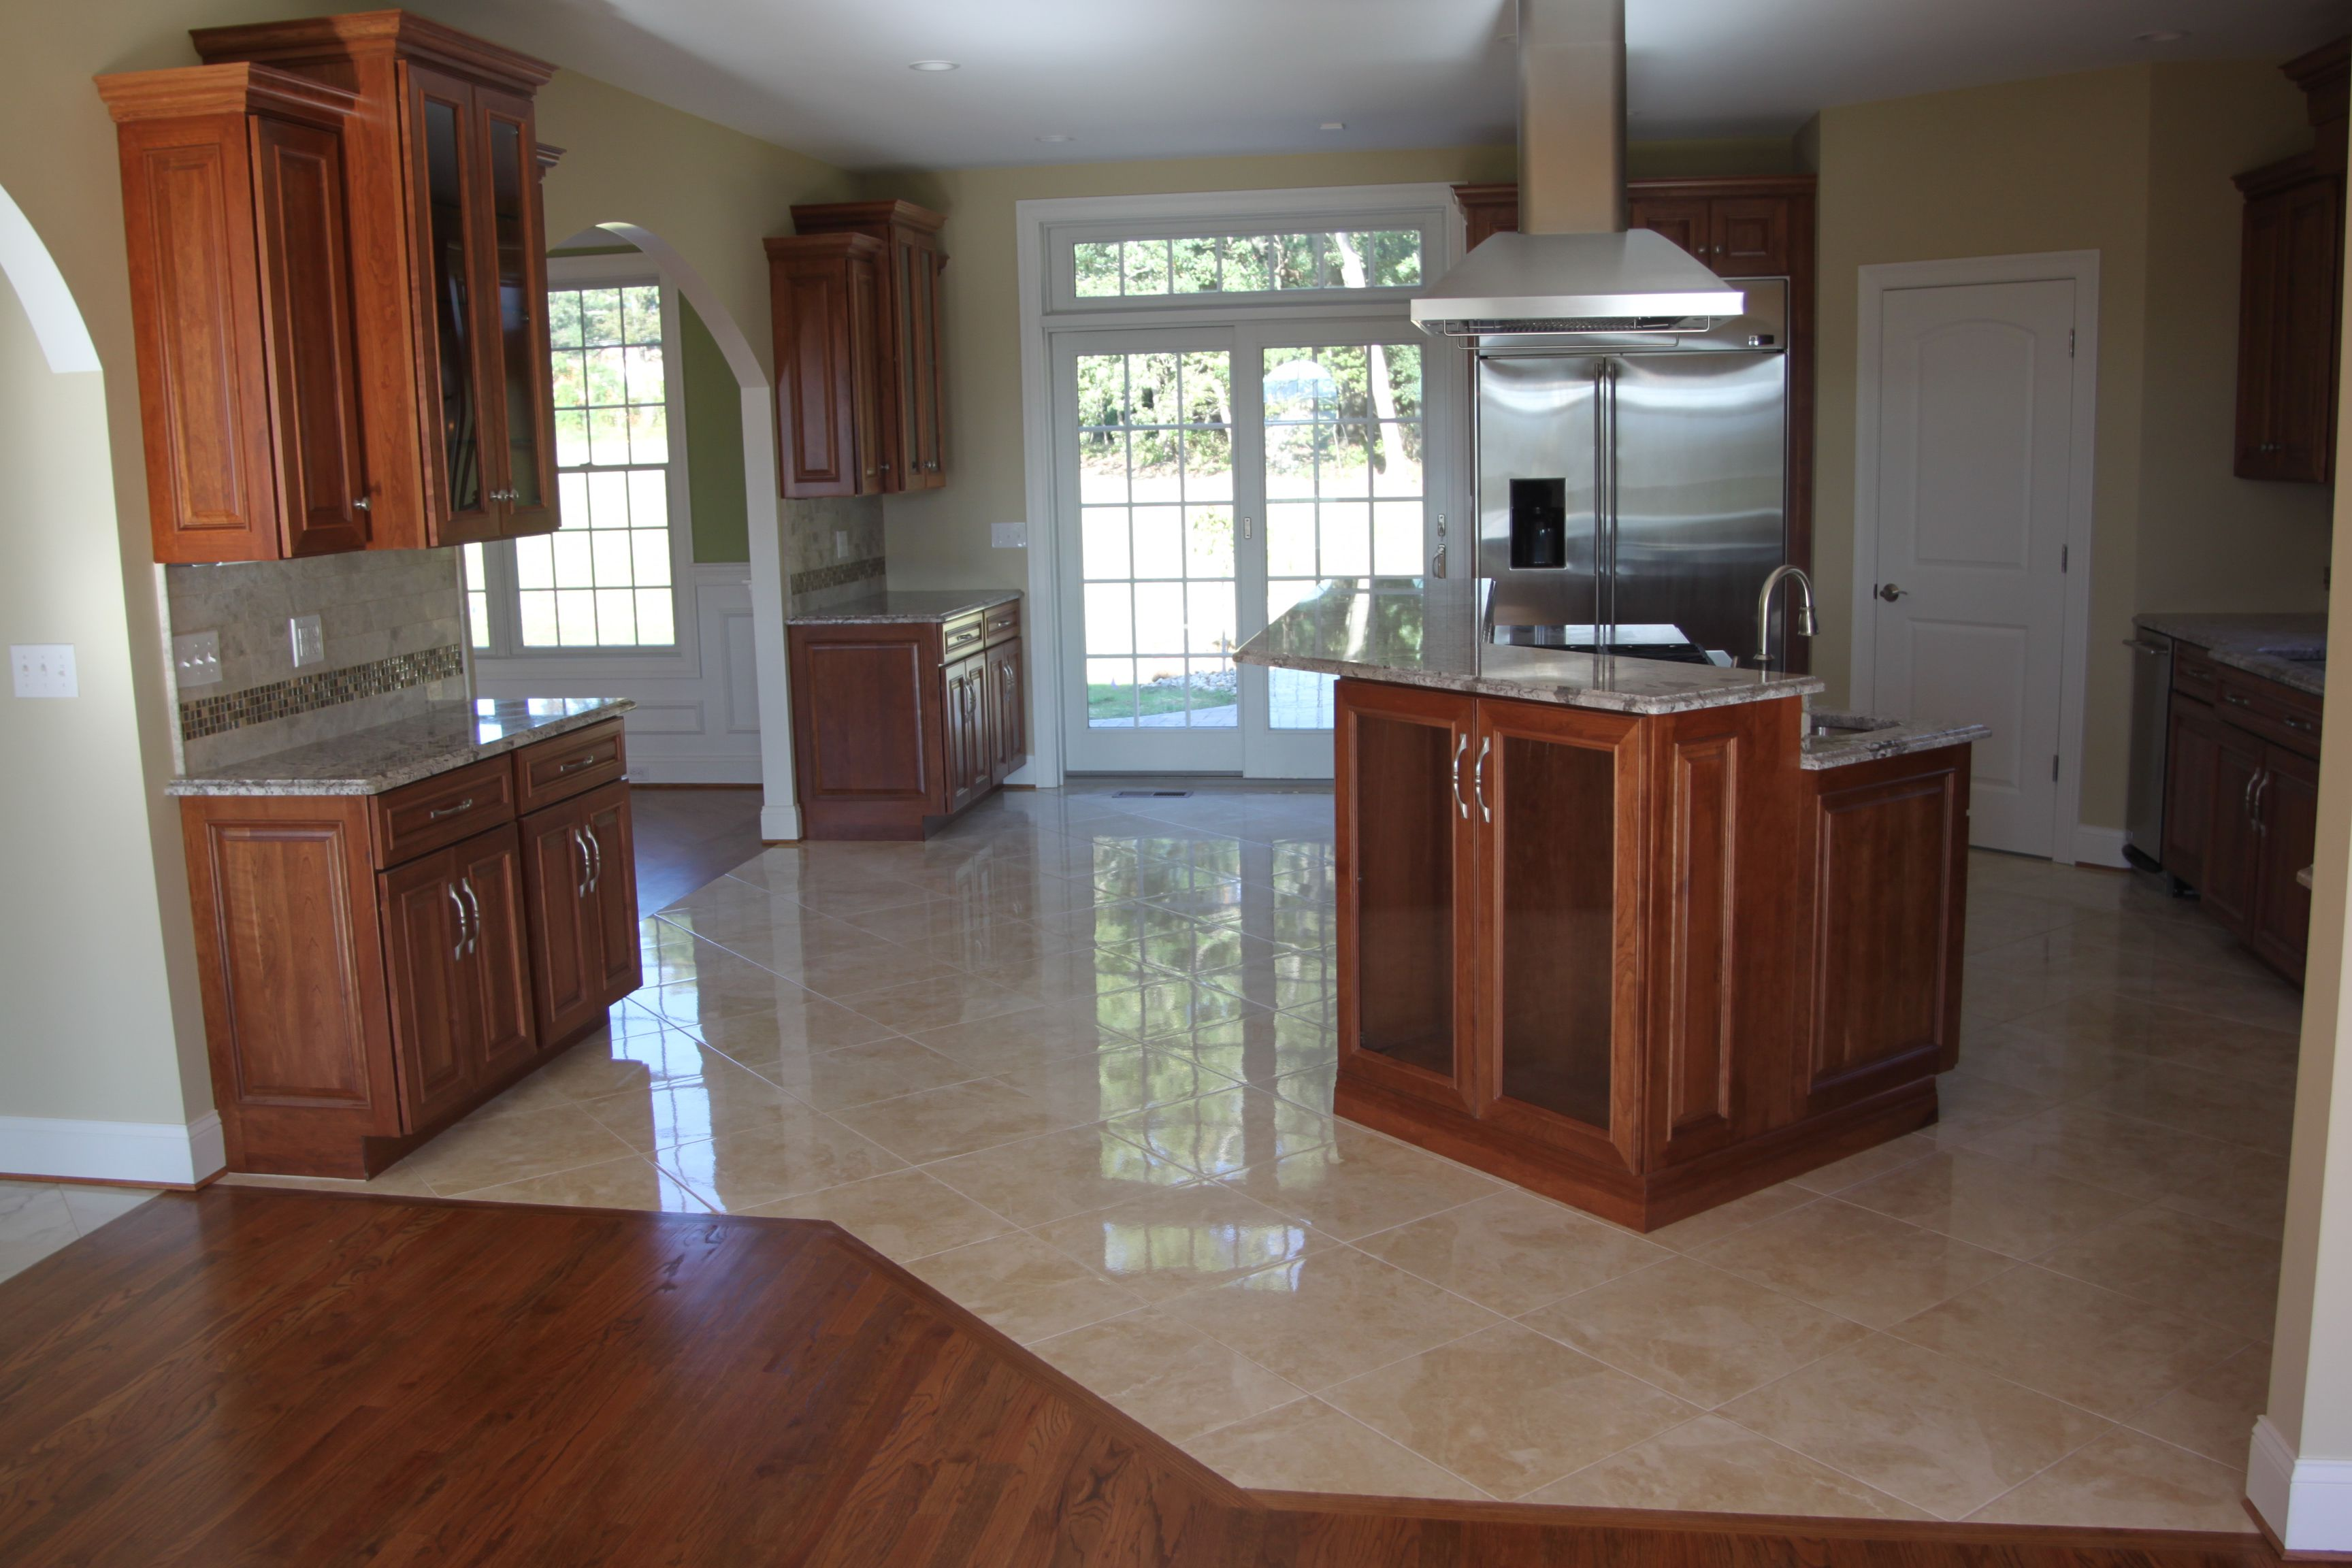 Ceramic Kitchen Floor Design Ideas ~ Floor tile designs ideas to enhance your appearance